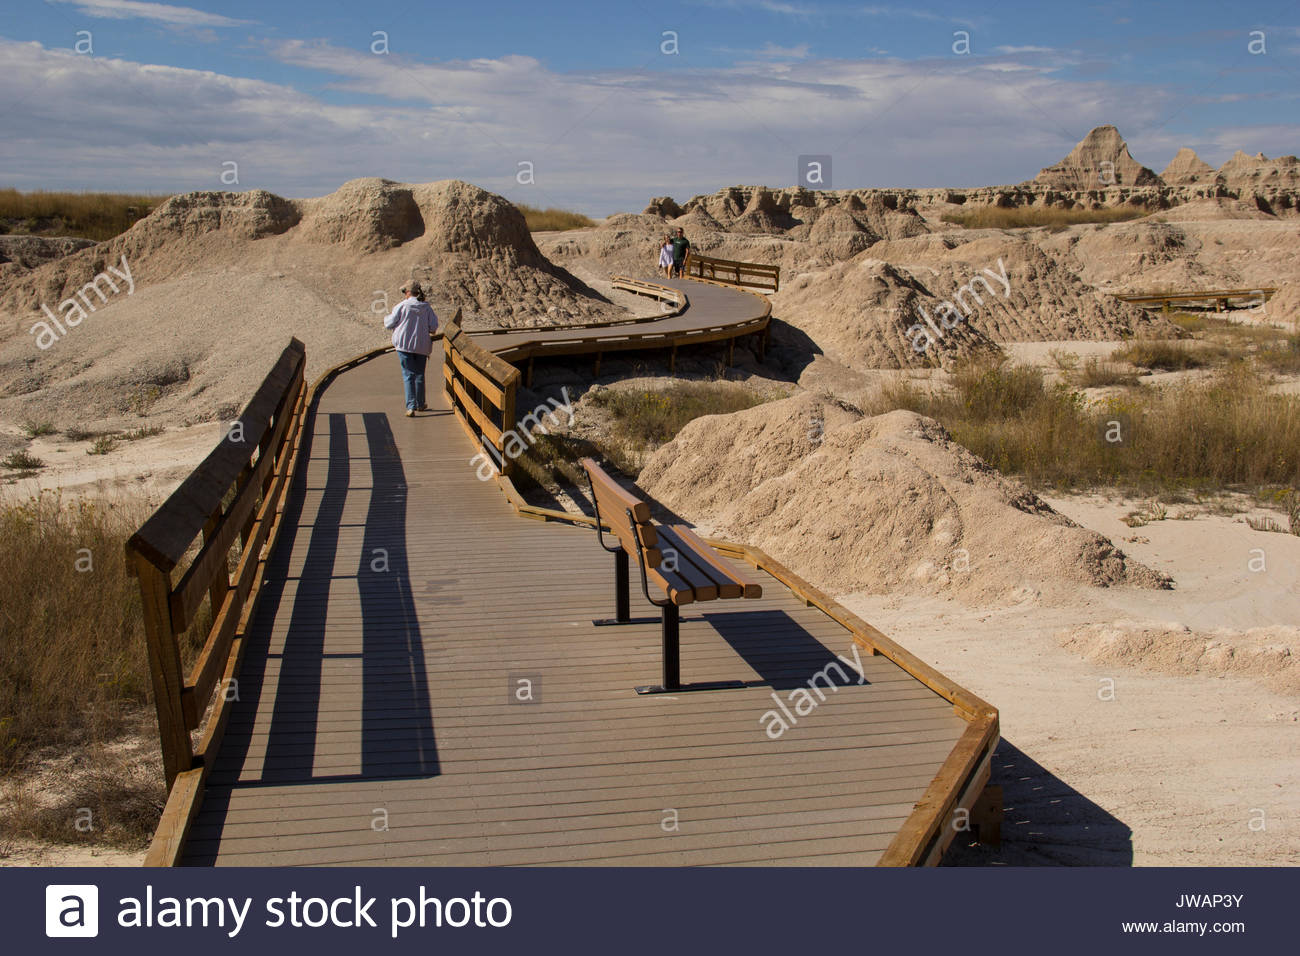 A park walkway offers visitors a closer view of the desert. - Stock Image